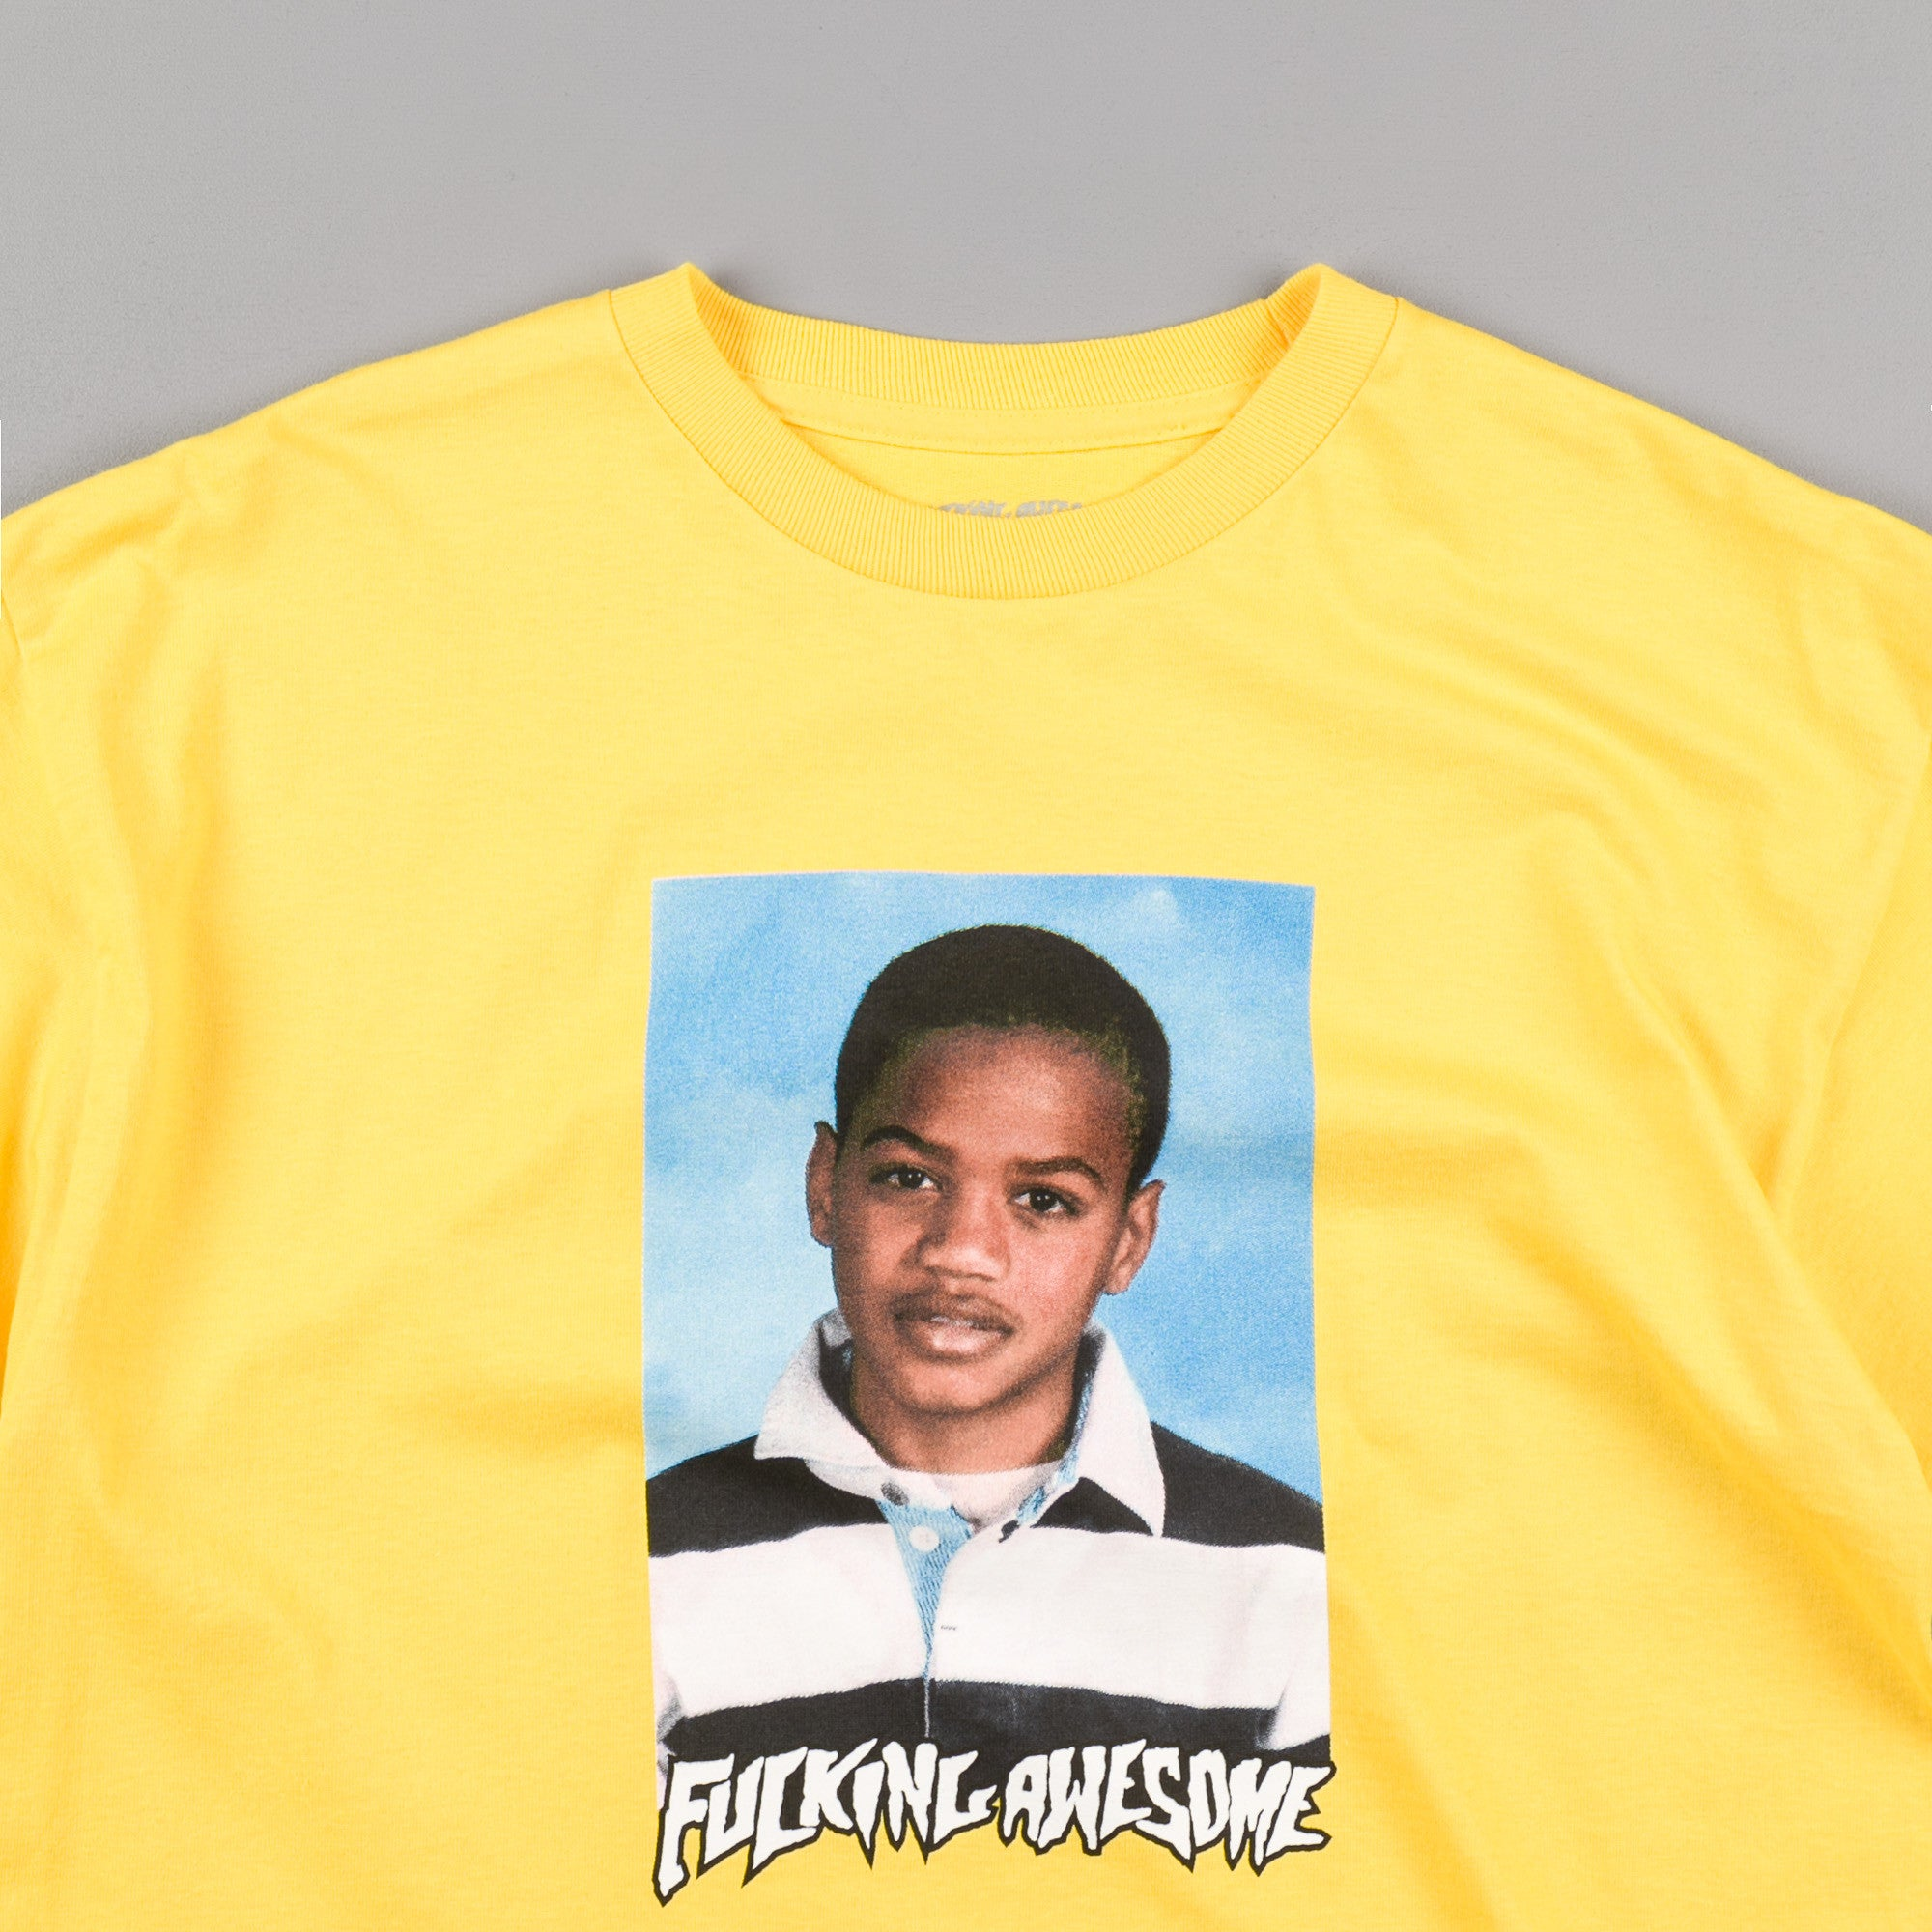 Fucking Awesome Tyshawn Class Photo T-Shirt - Yellow